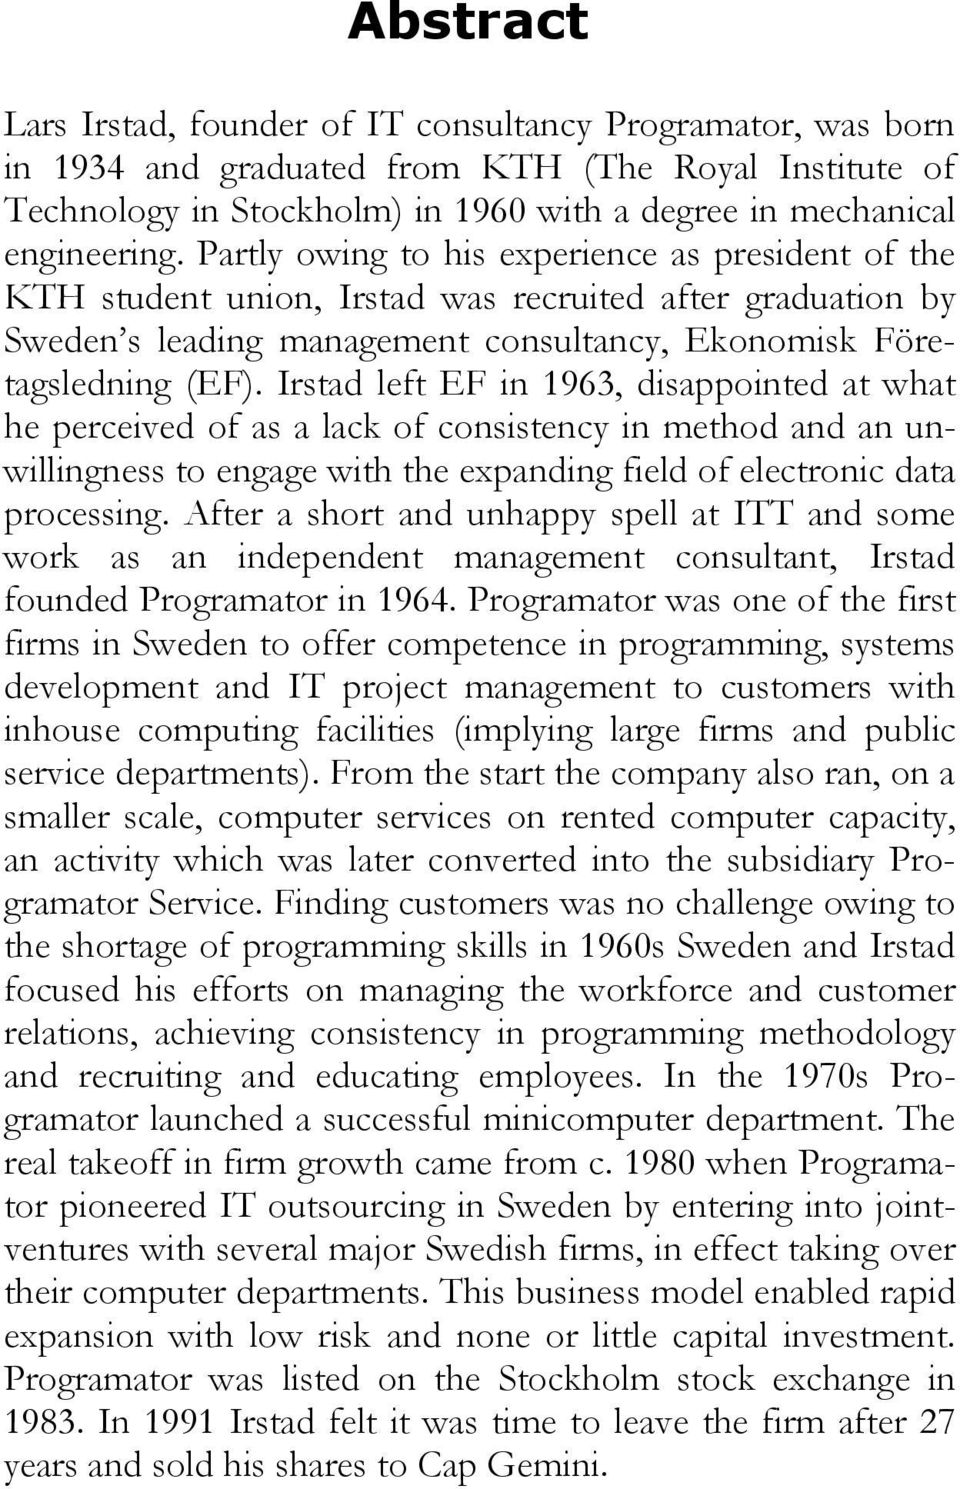 Irstad left EF in 1963, disappointed at what he perceived of as a lack of consistency in method and an unwillingness to engage with the expanding field of electronic data processing.